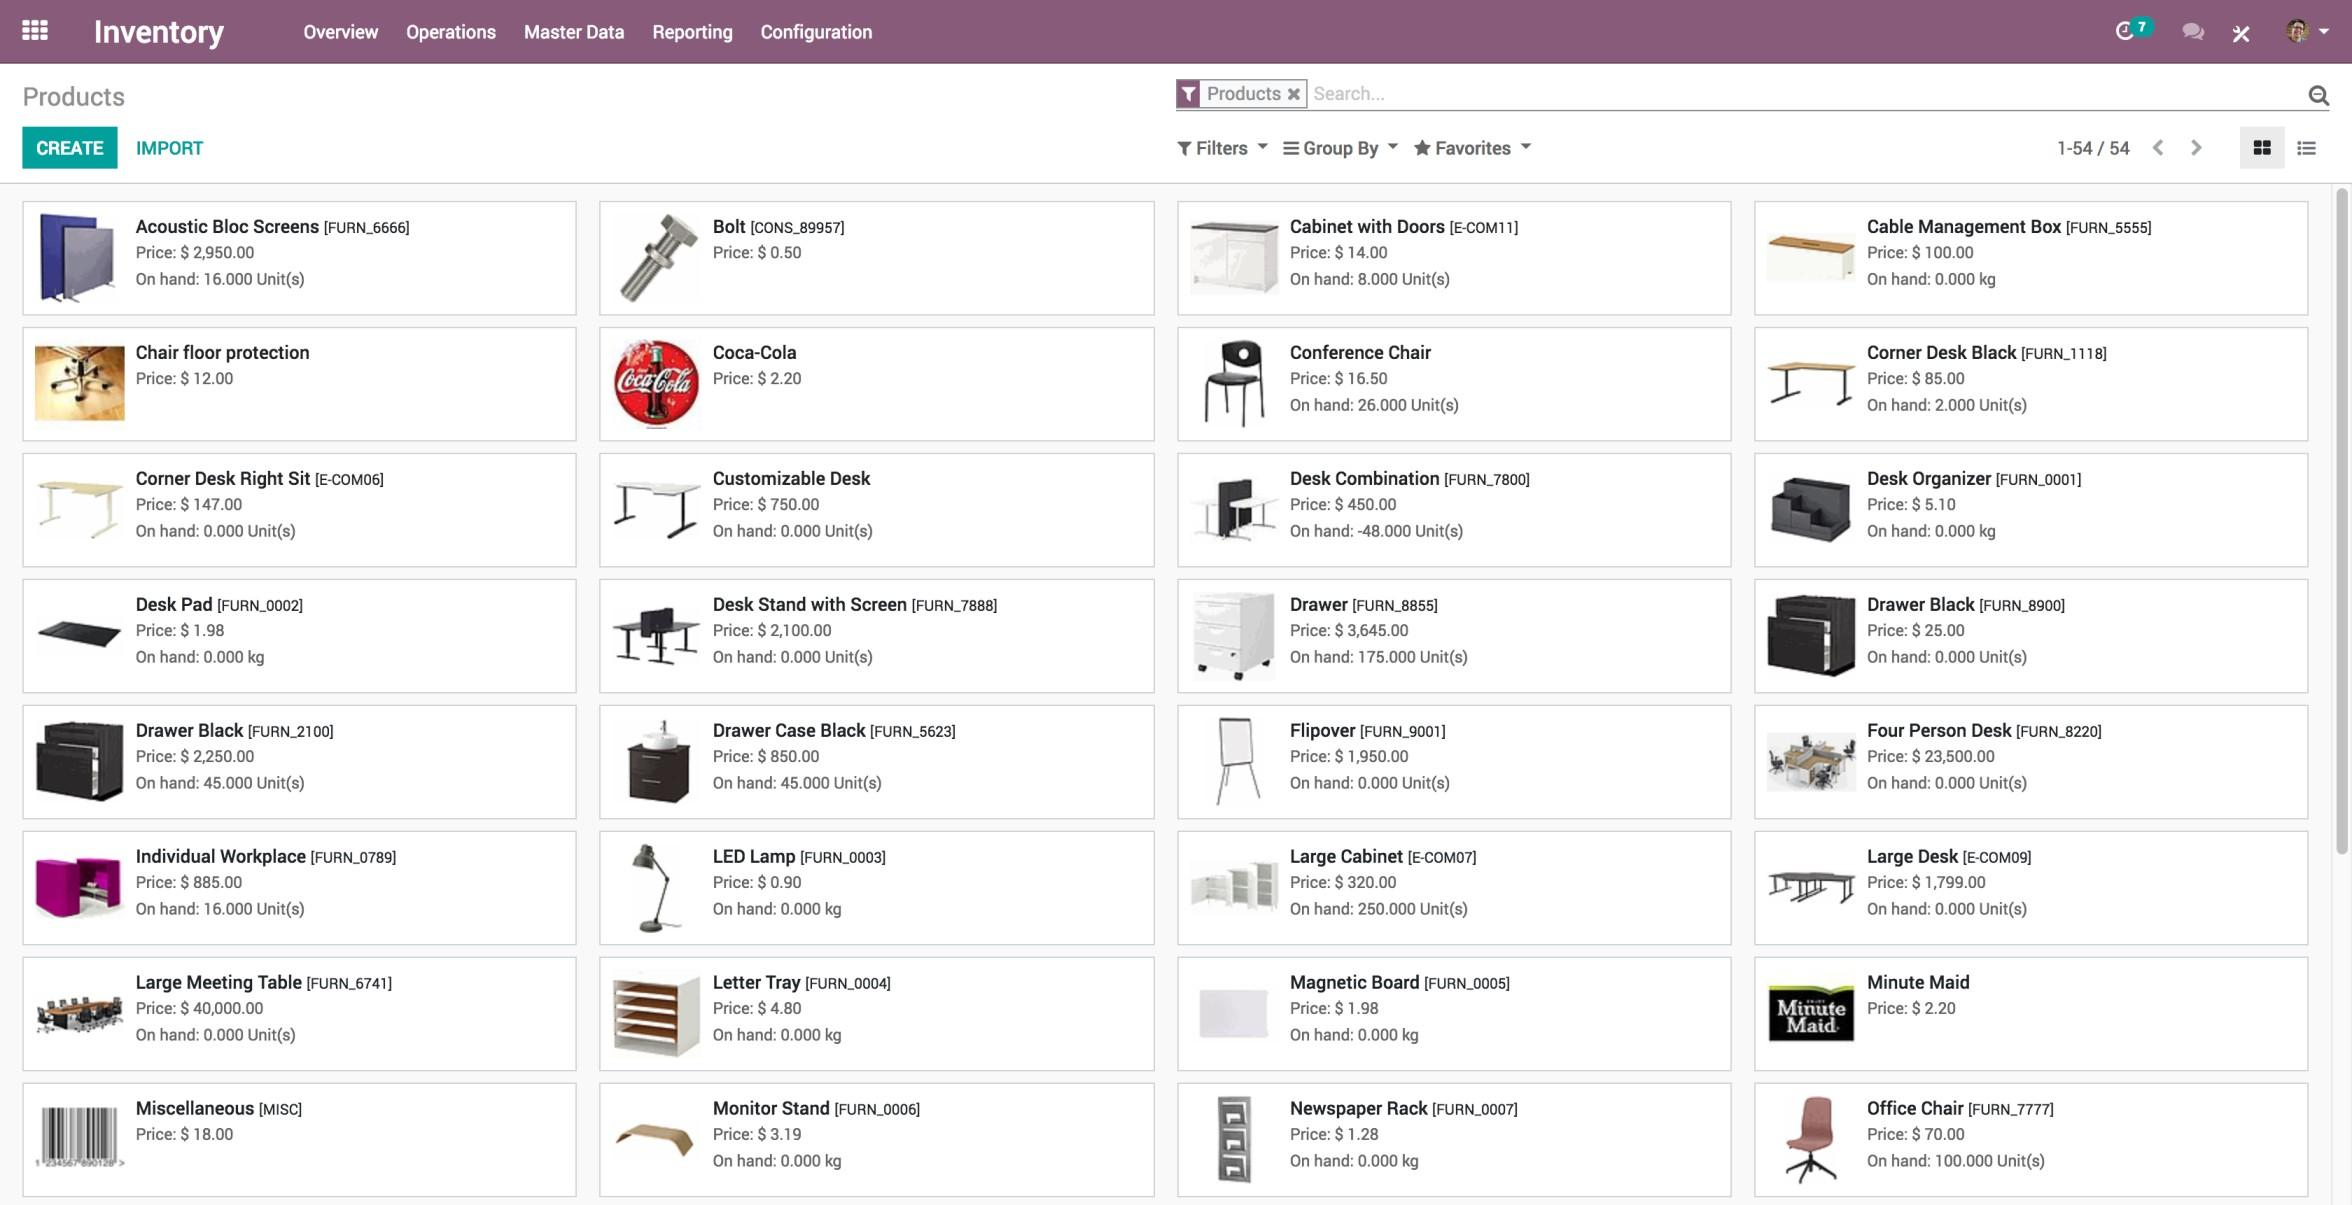 Products List